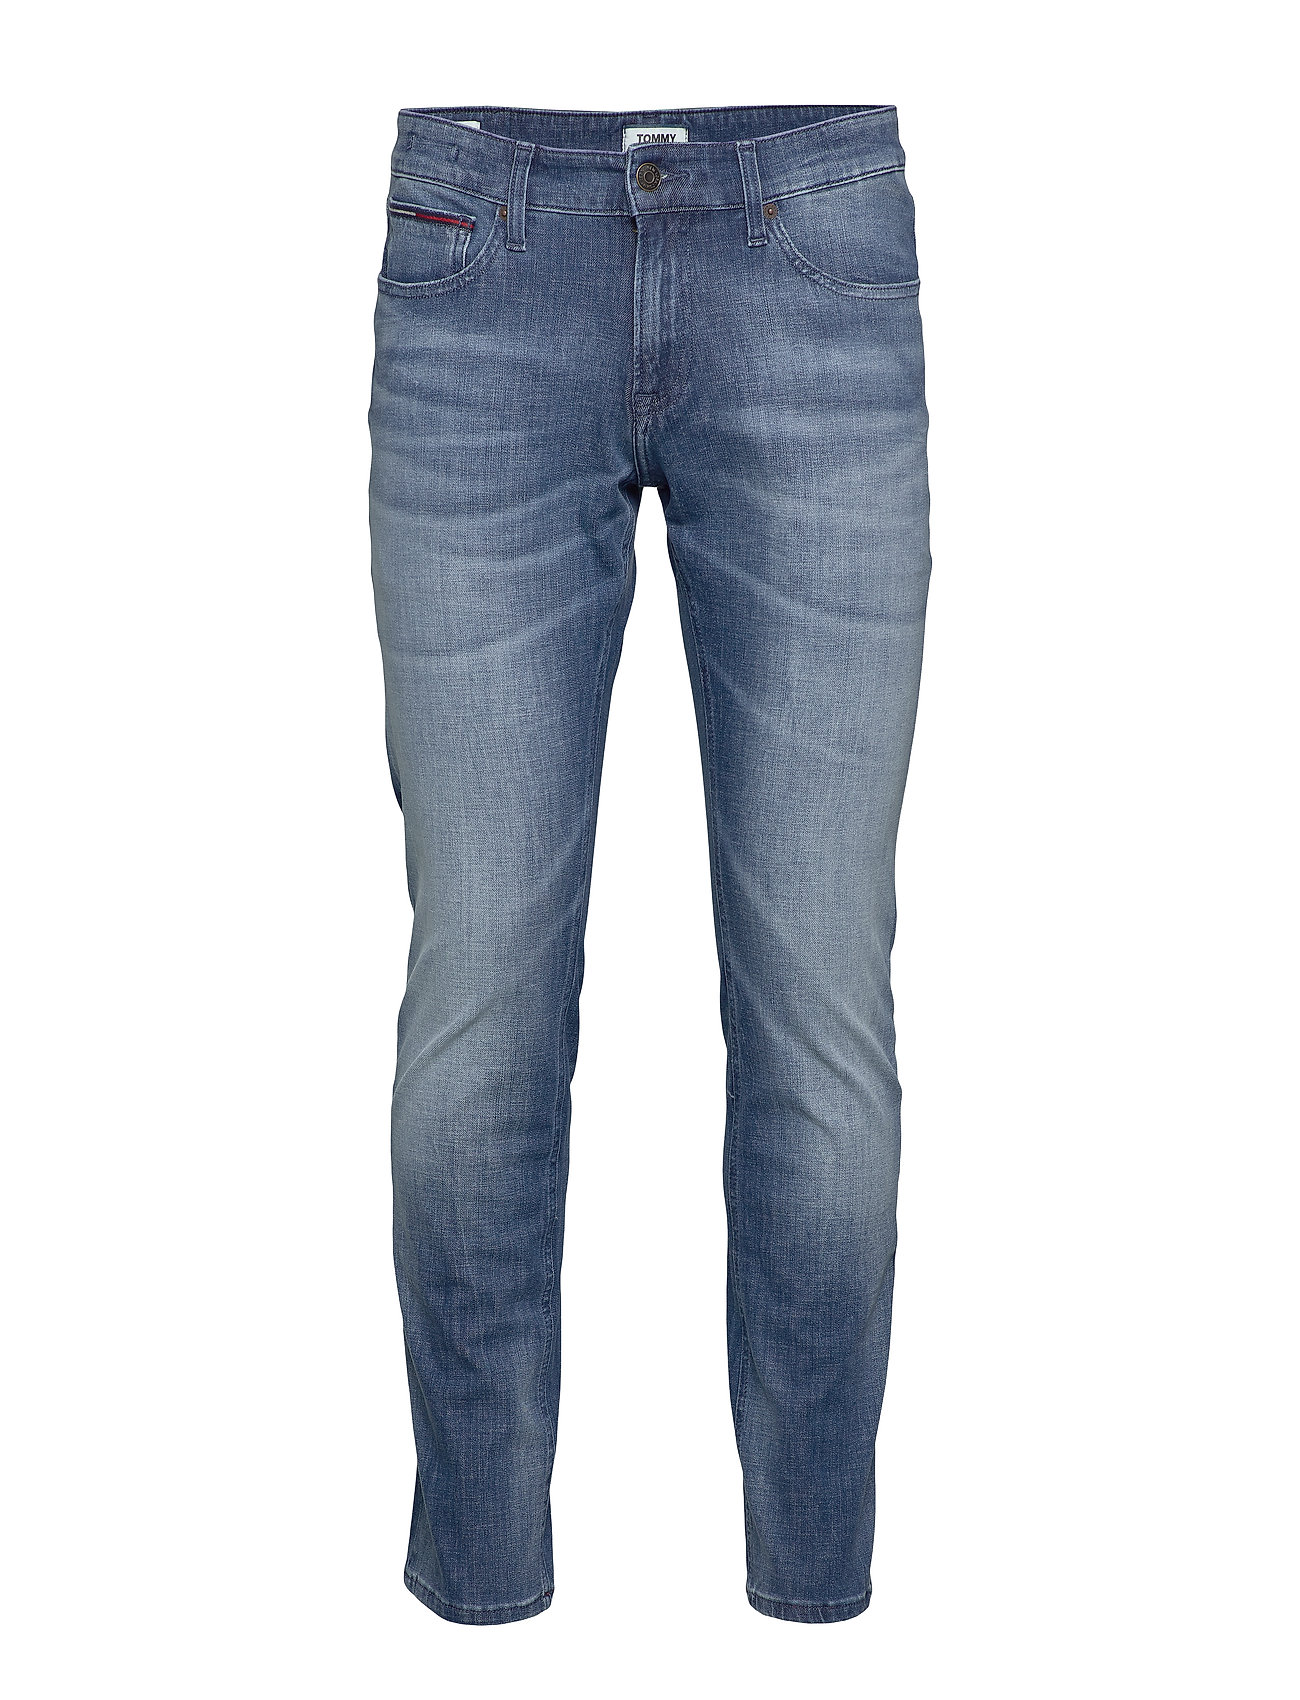 Tommy Jeans SCANTON SLIM DYCRM - DYNAMIC CROSS MID ST